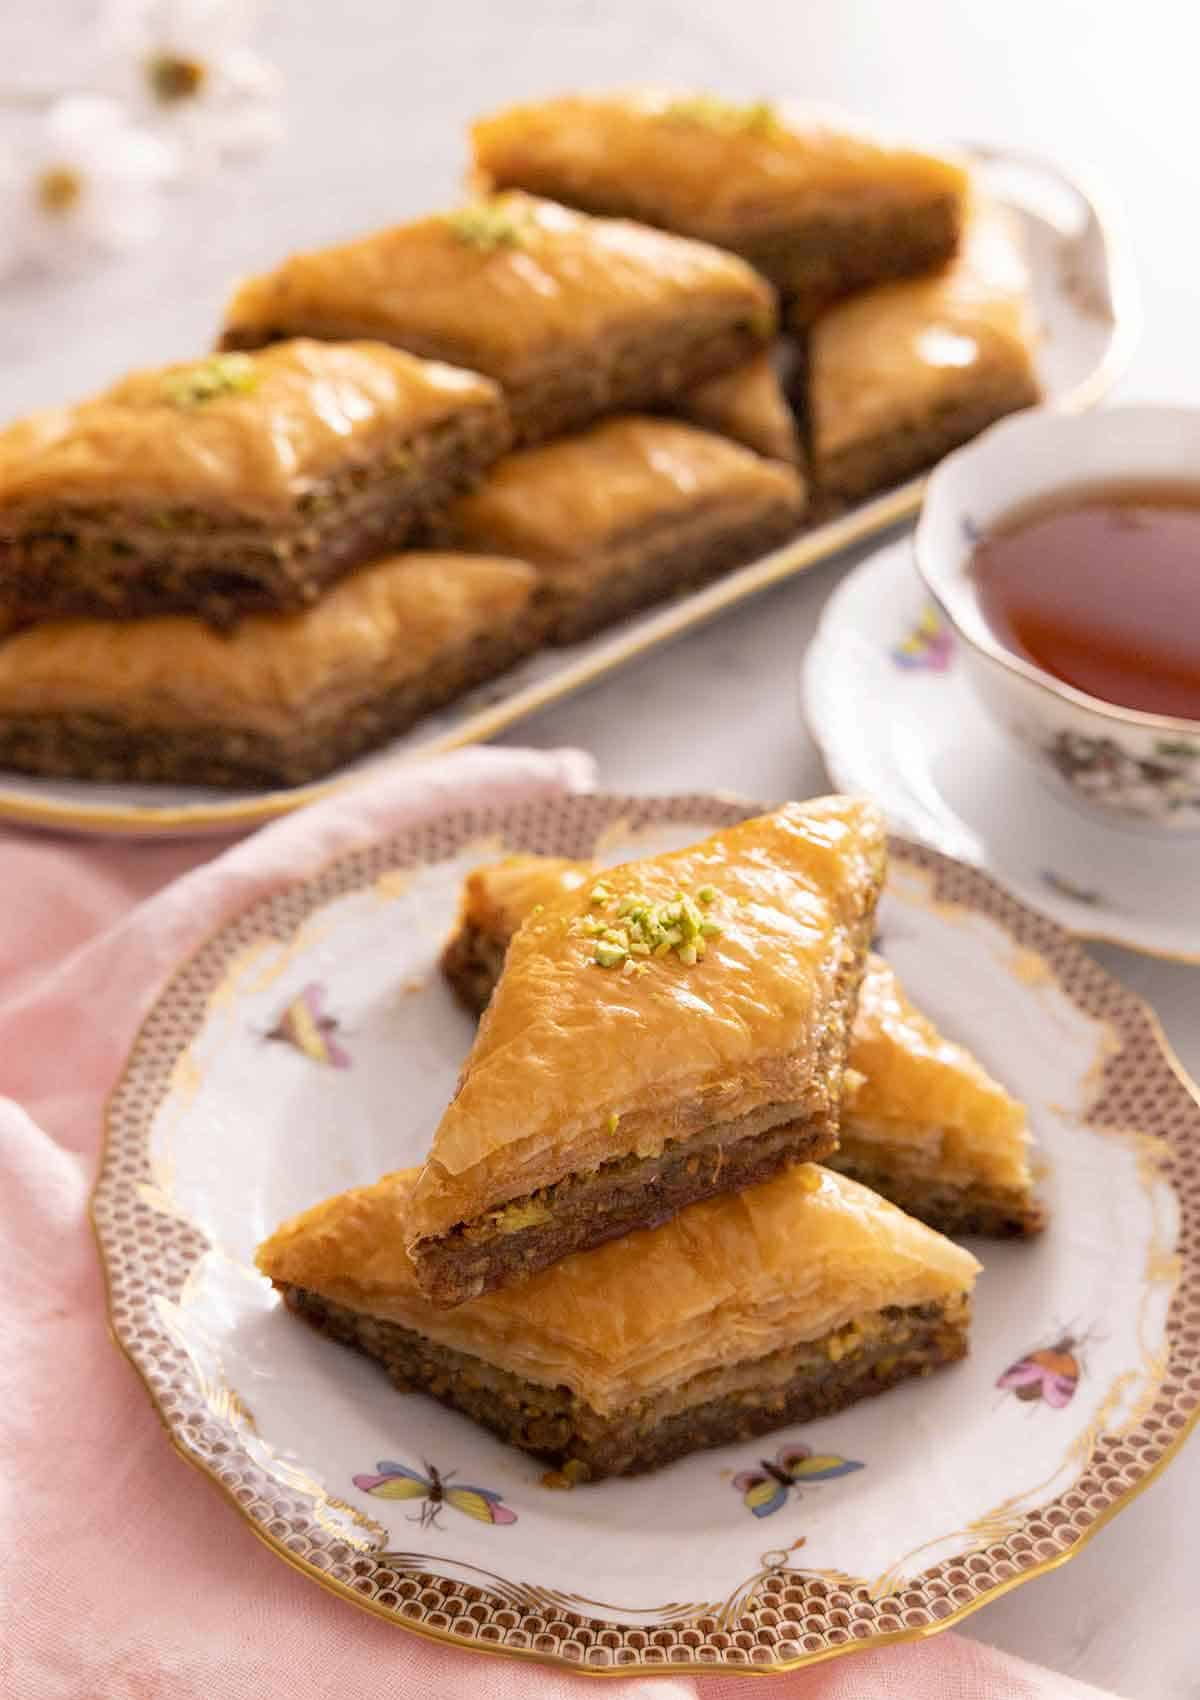 A plate with three baklava with one on top of two, with a platter of baklava in the background.